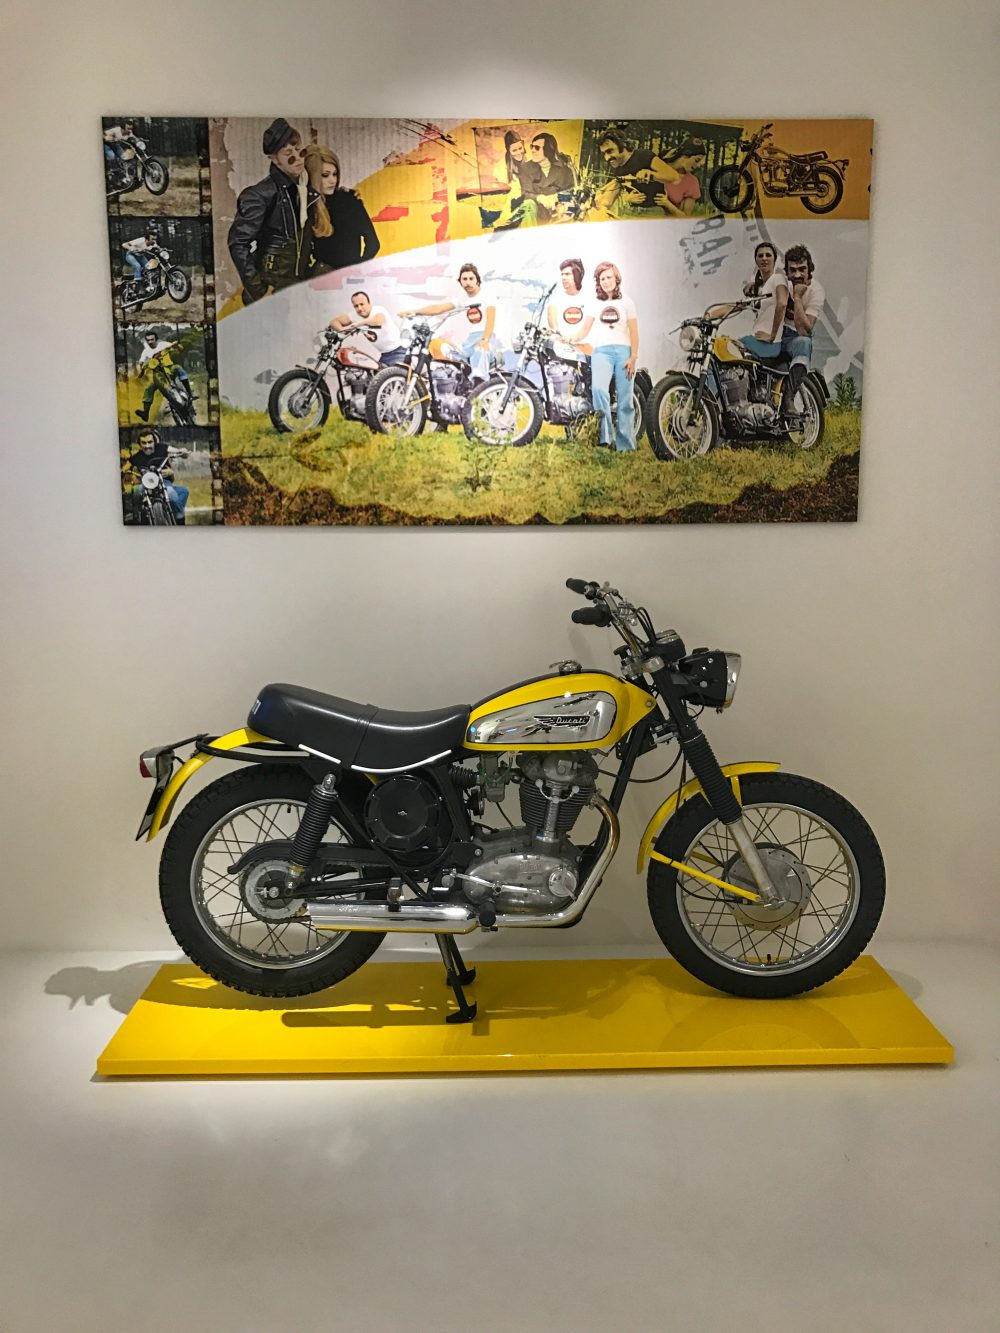 Guide to Bologna: visiting the Ducati Museum